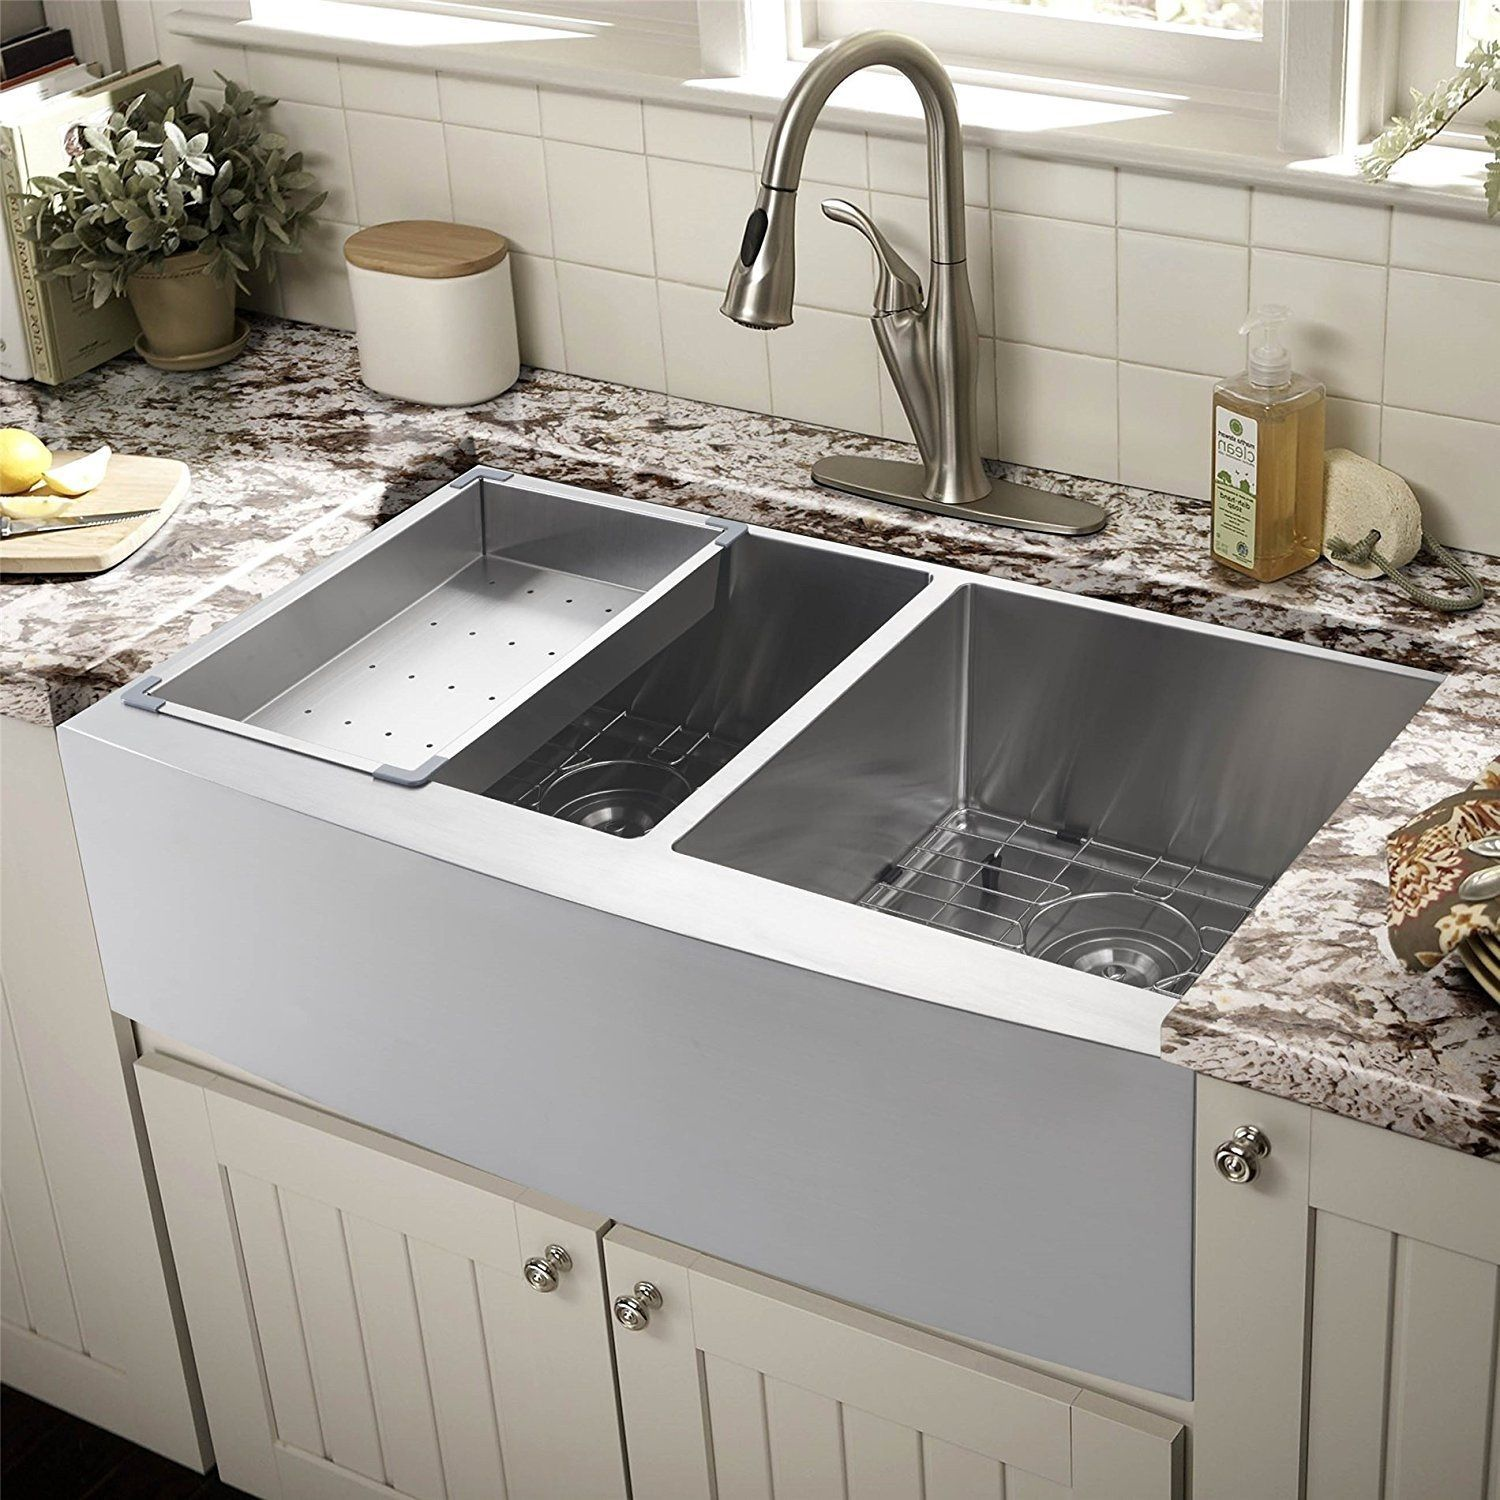 Stainless Steel Farmhouse Sinks Apron Front Sinks Best Kitchen Sinks Farmhouse Sink Kitchen Corner Sink Kitchen